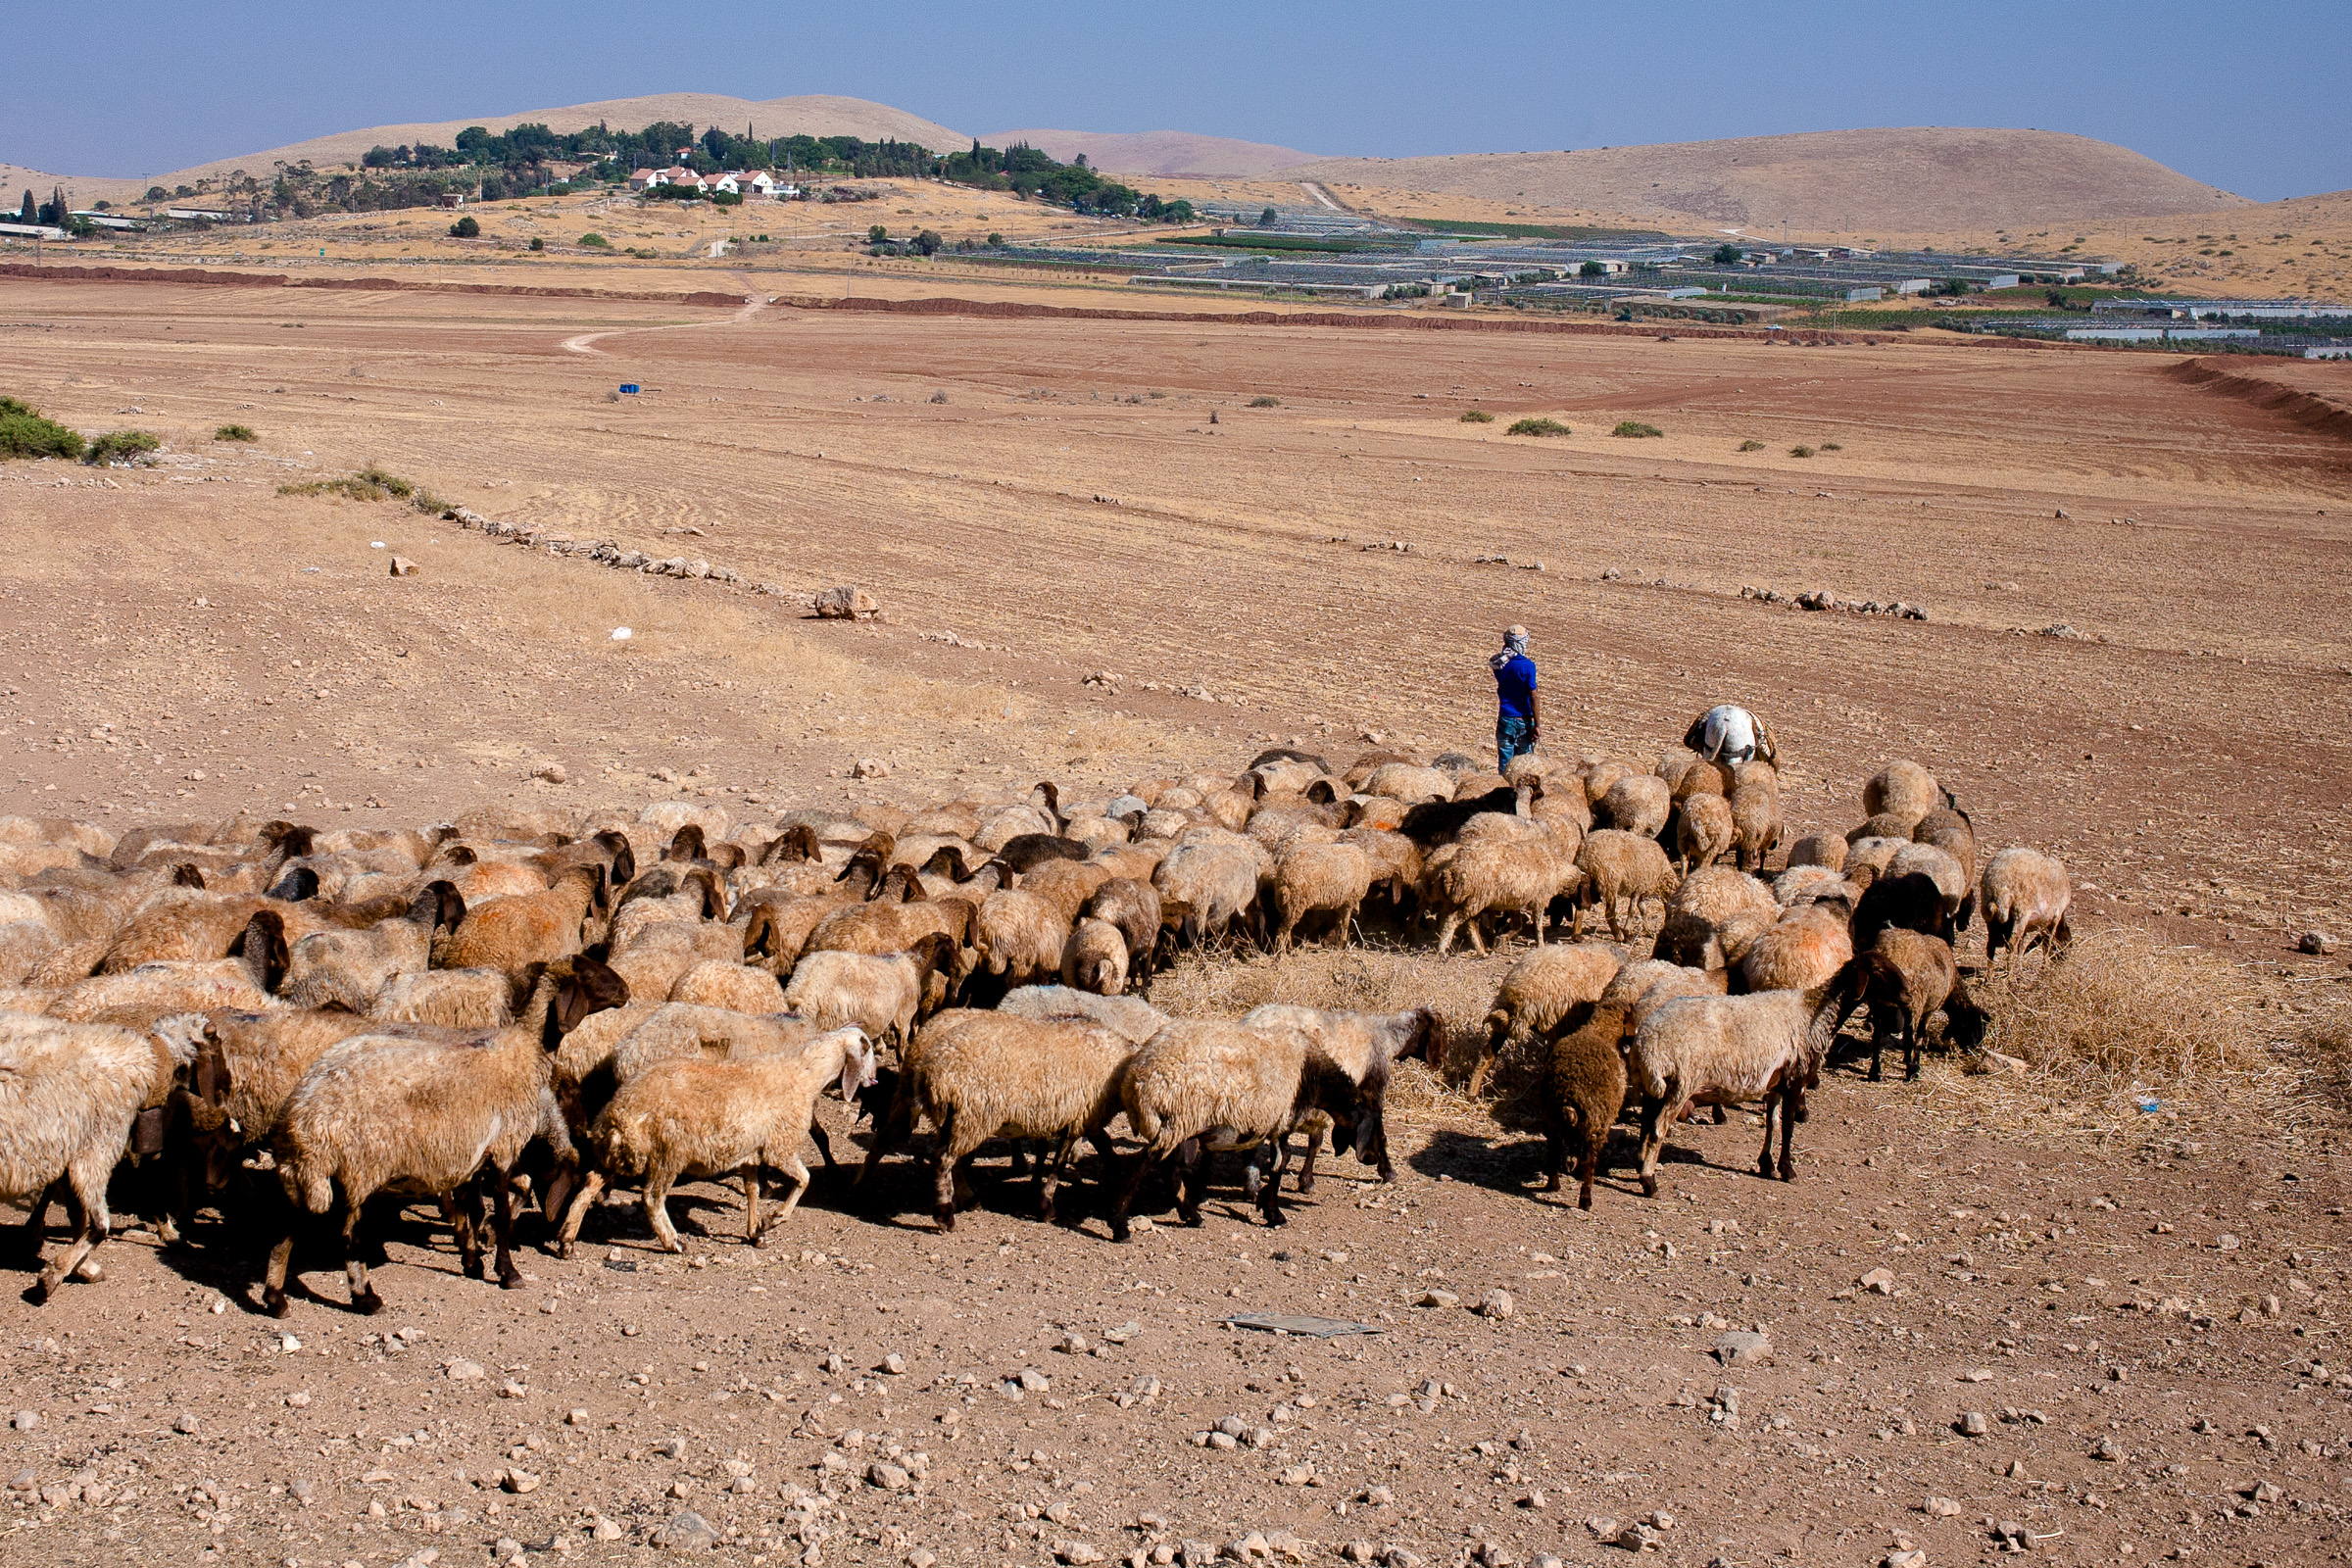 A Palestinian sheep farmer looking at a Israeli settlement that controls the water supply, in the district of Tubas.